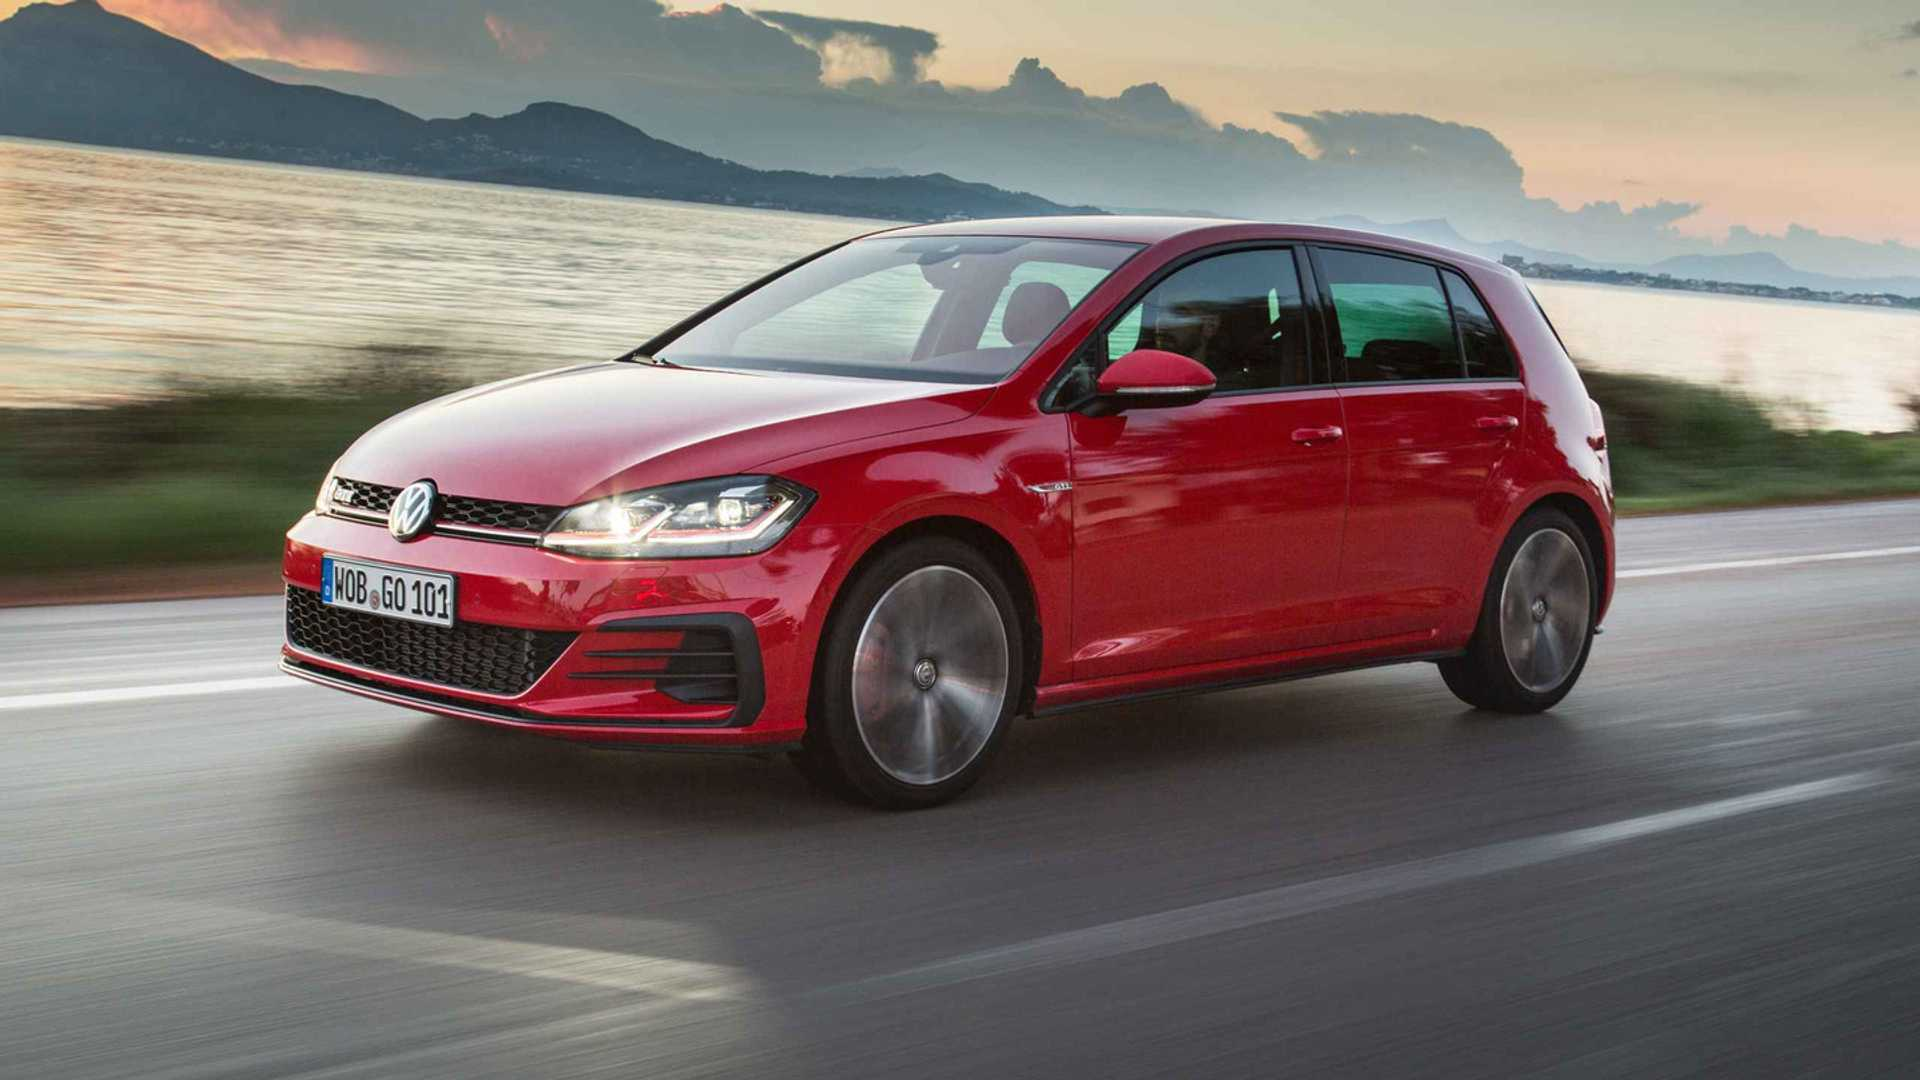 Report: VW says it should build more 'enthusiast cars'